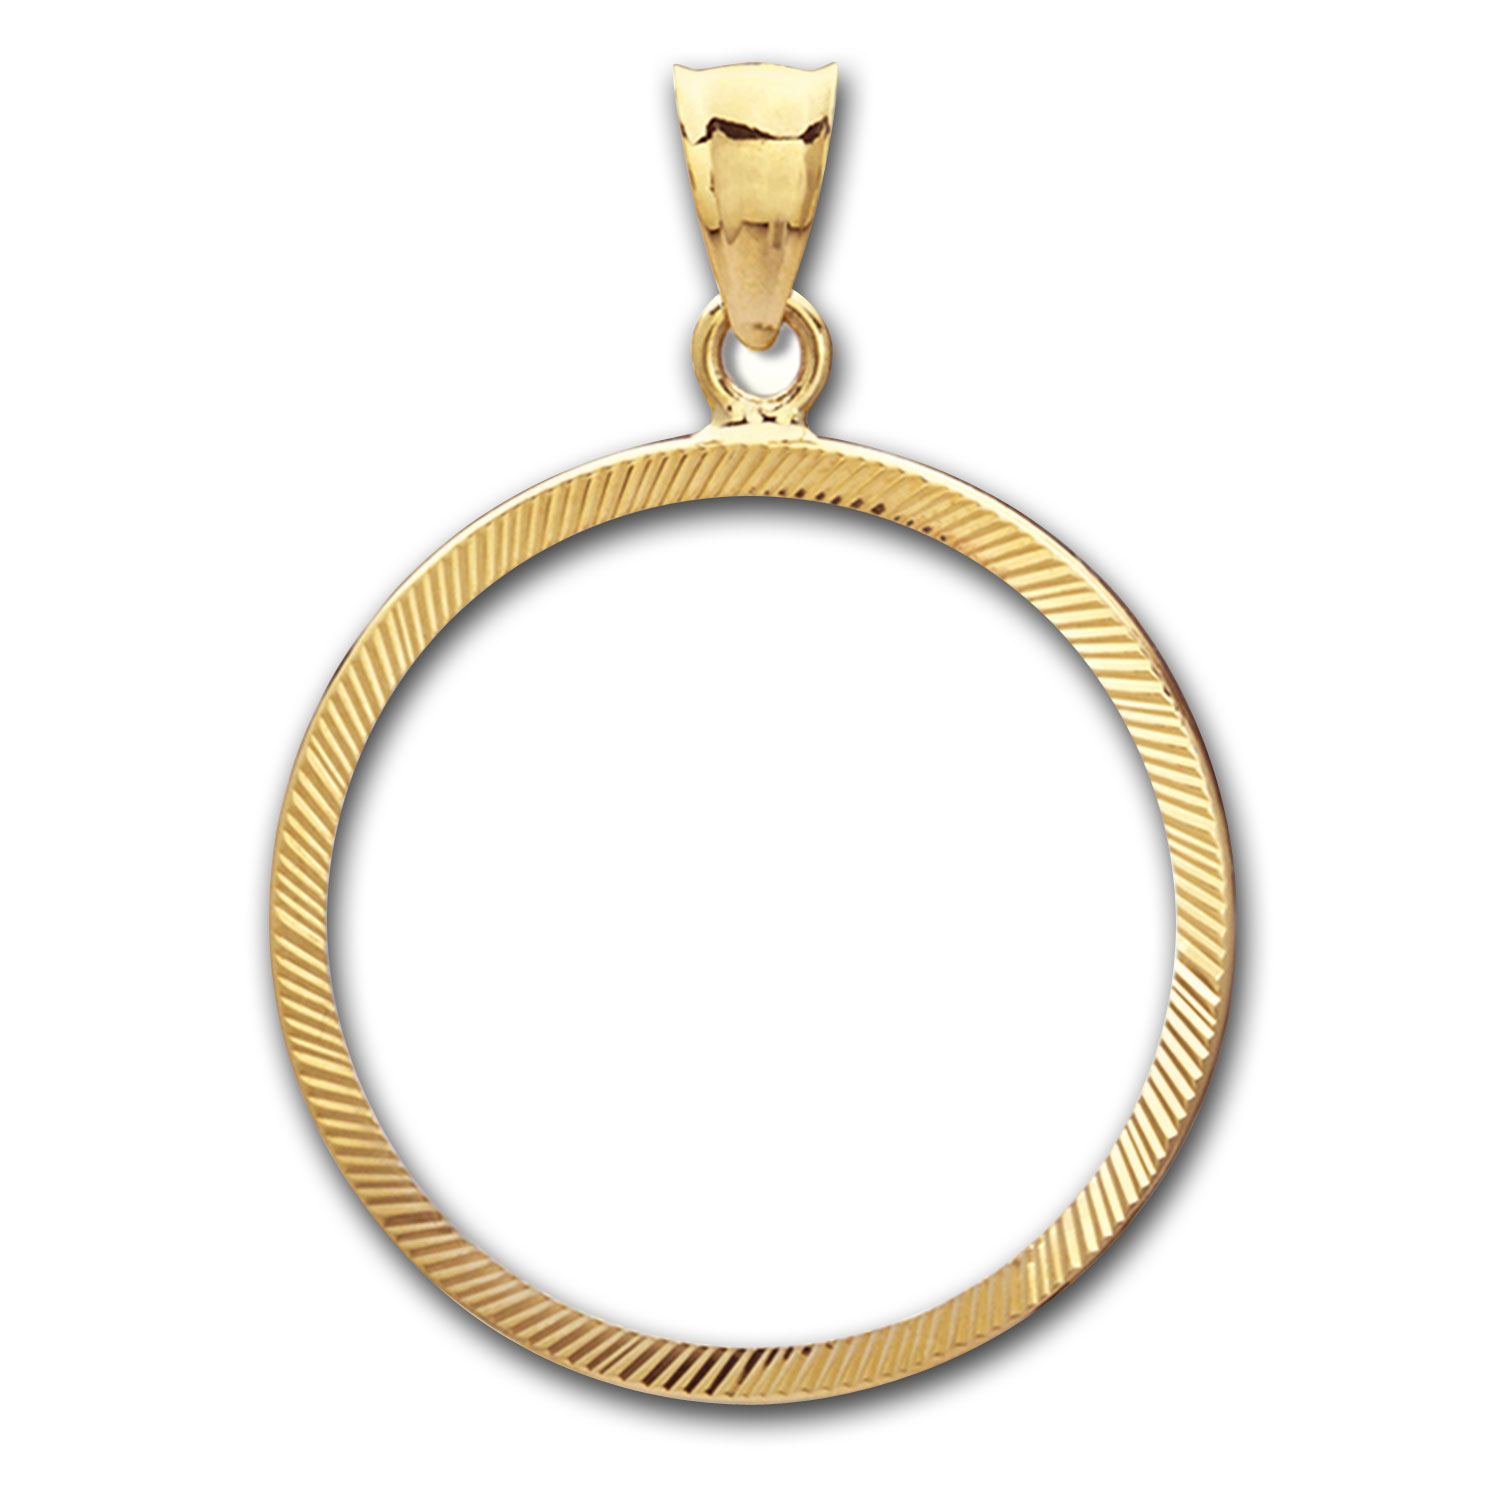 14K Gold Prong Diamond-Cut Coin Bezel - 14 mm